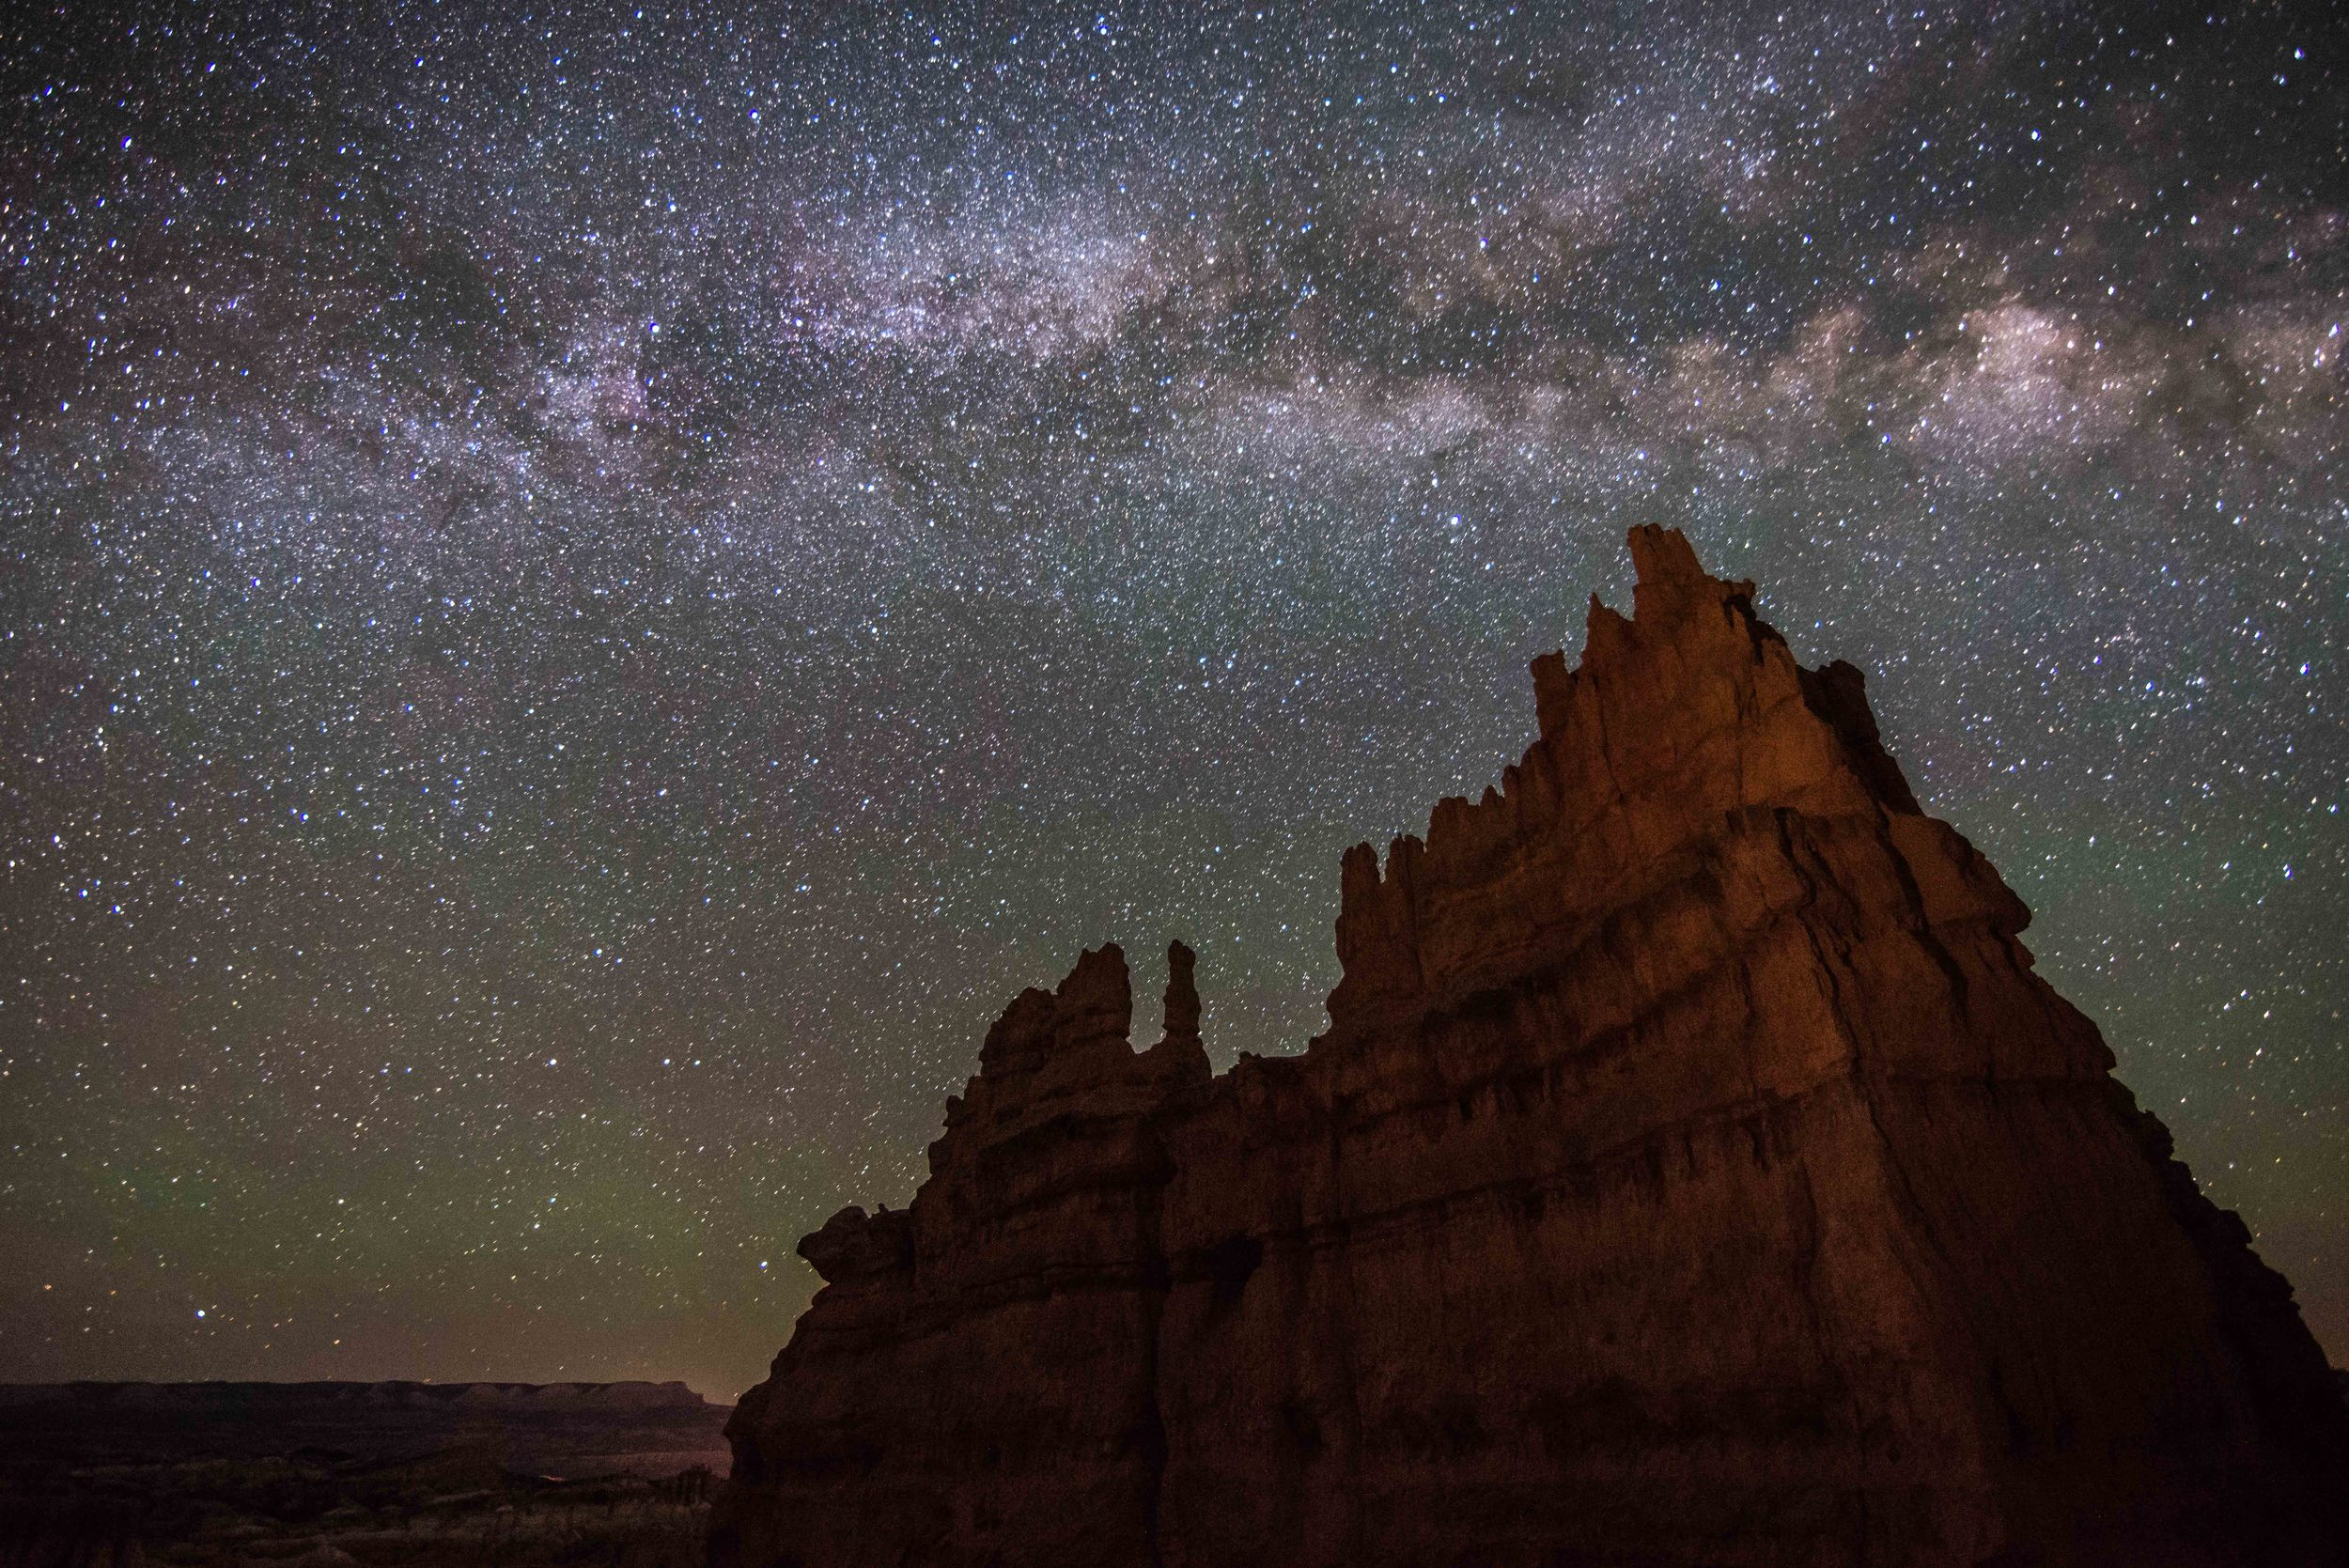 Hoodoo Formation in Bryce Canyon National Park at Night